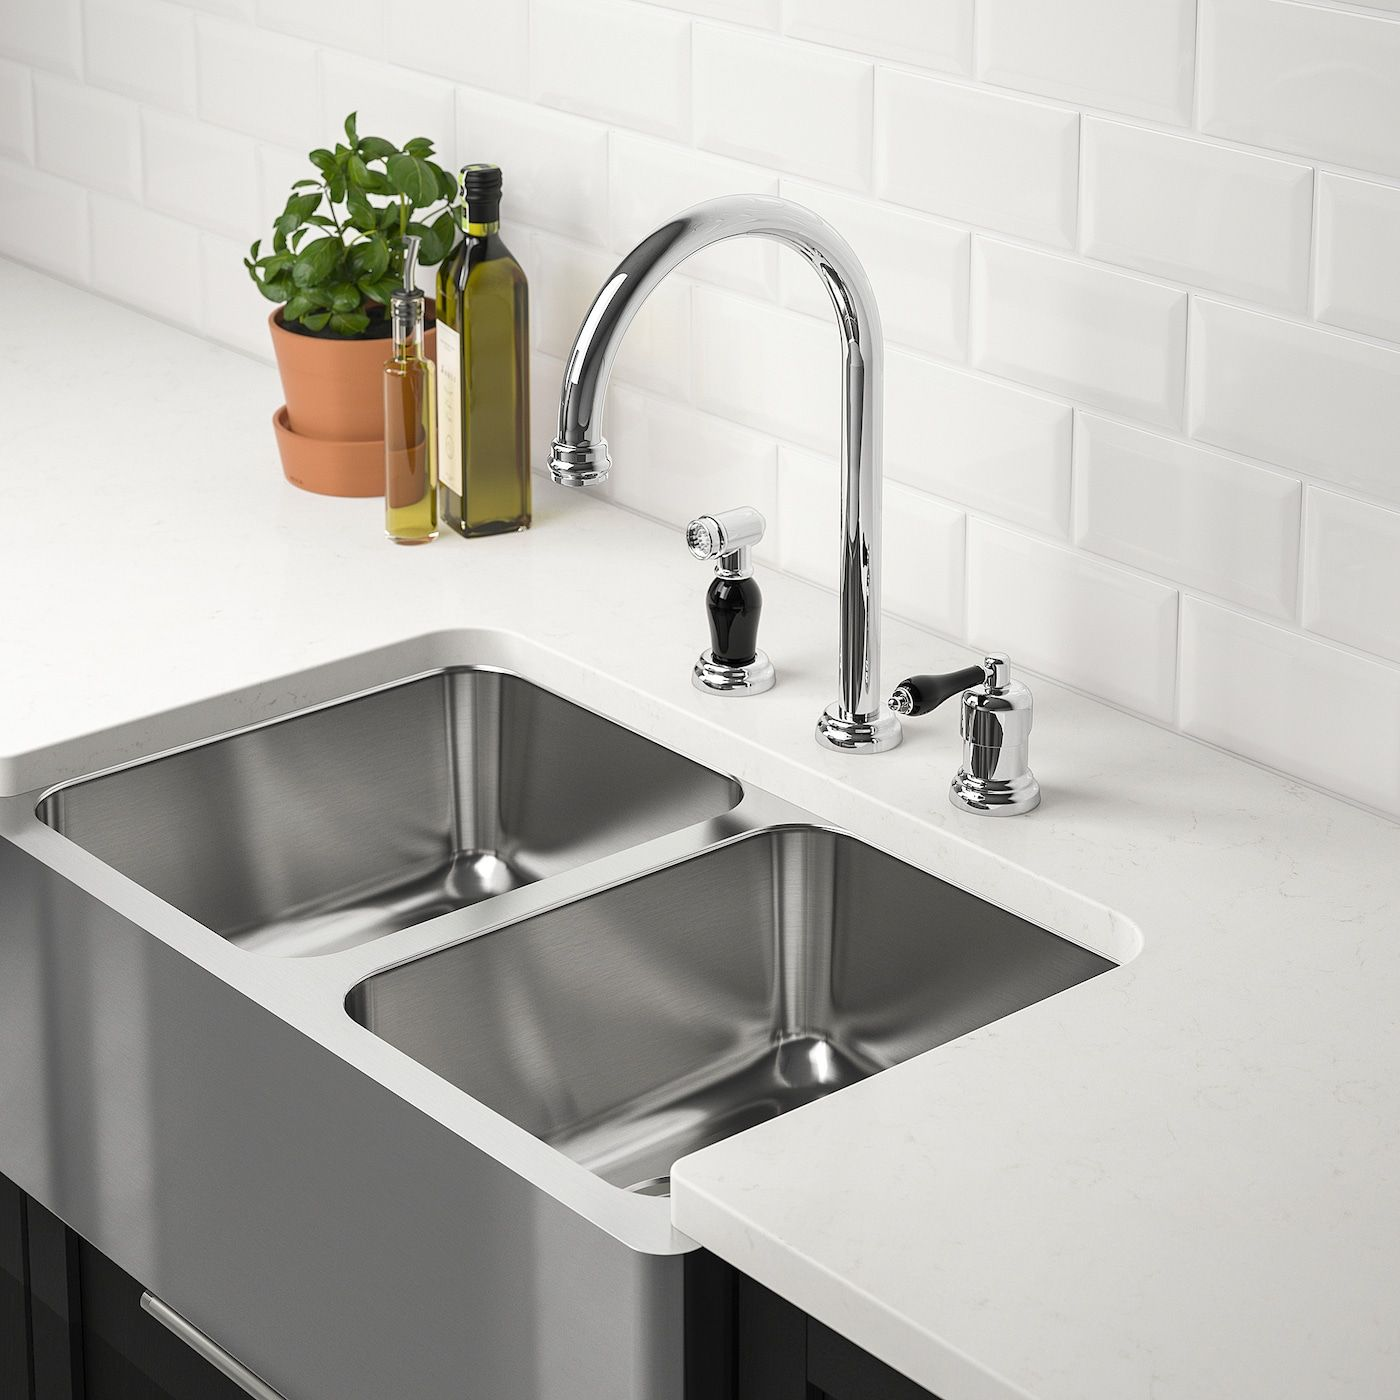 Bredsjon Apron Front Double Bowl Sink Under Glued Stainless Steel Ikea In 2020 Double Bowl Sink Double Kitchen Sink Double Bowl Kitchen Sink